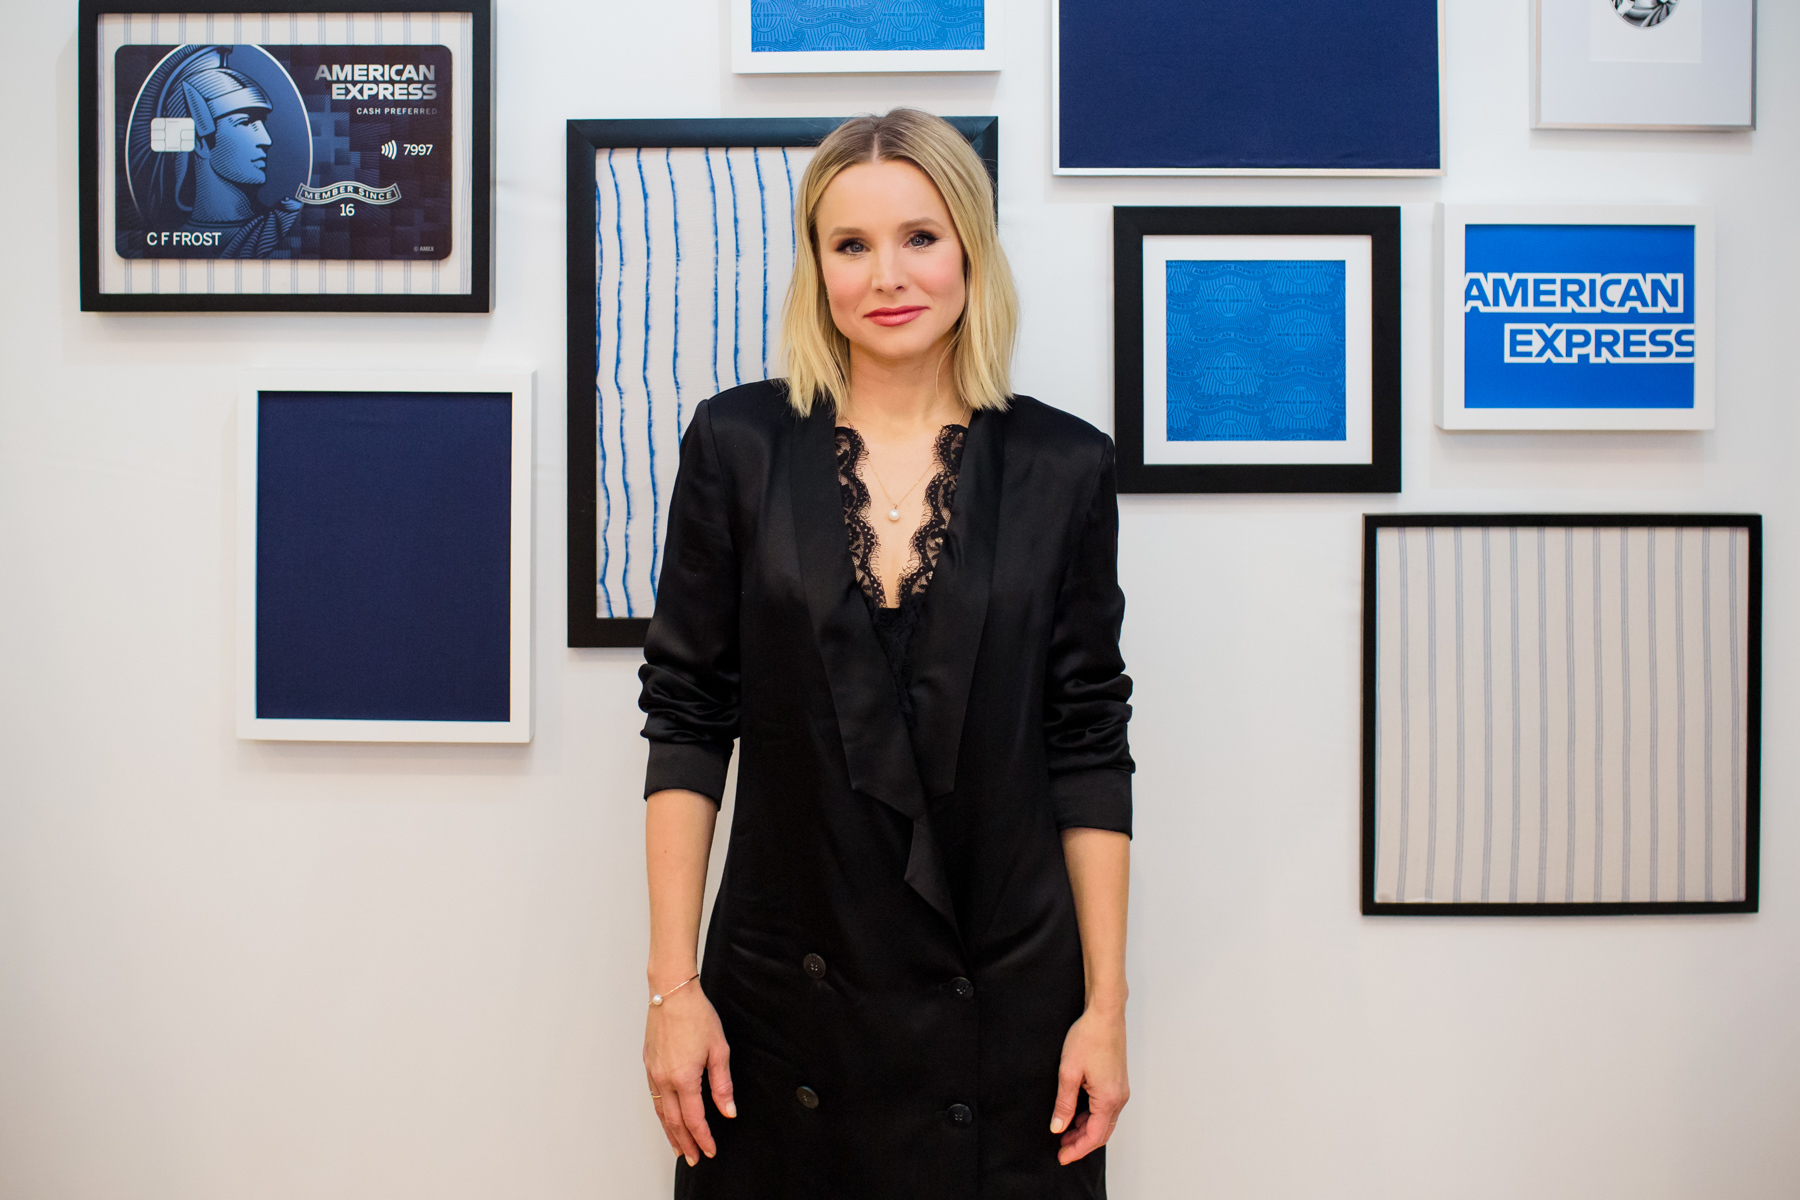 Why Kristen Bell sacrificed time with her daughters to make more 'Veronica Mars'